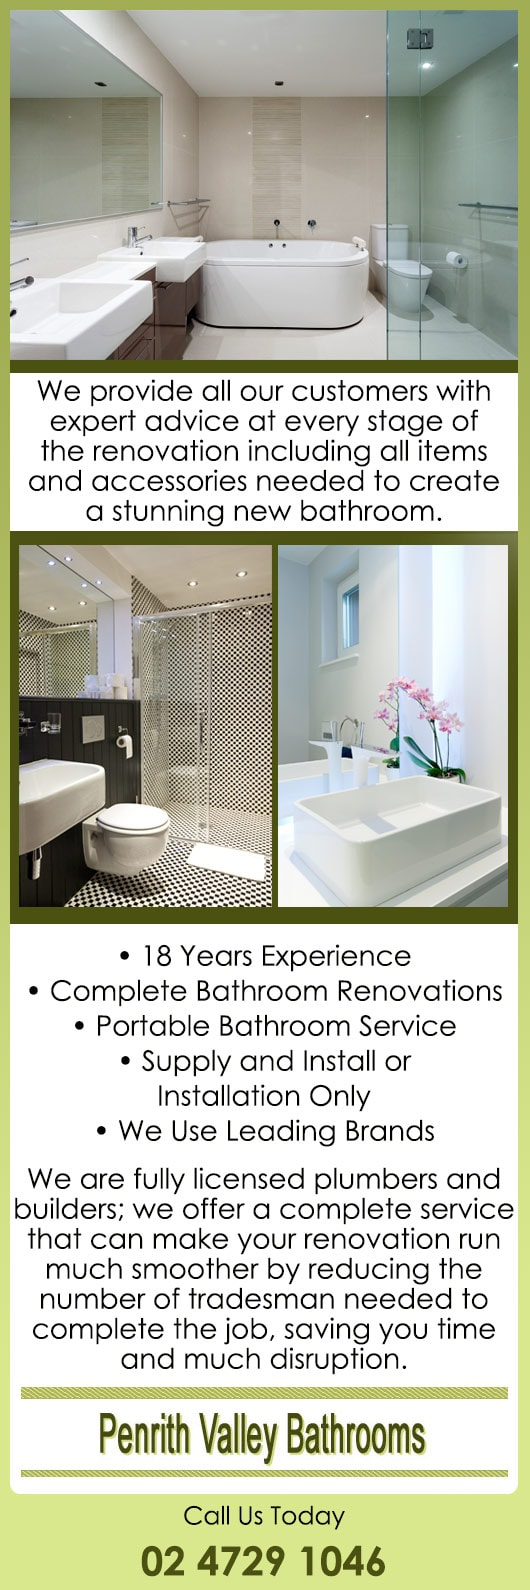 Penrith Valley Bathrooms - Bathroom Renovations & Designs - 232 ...